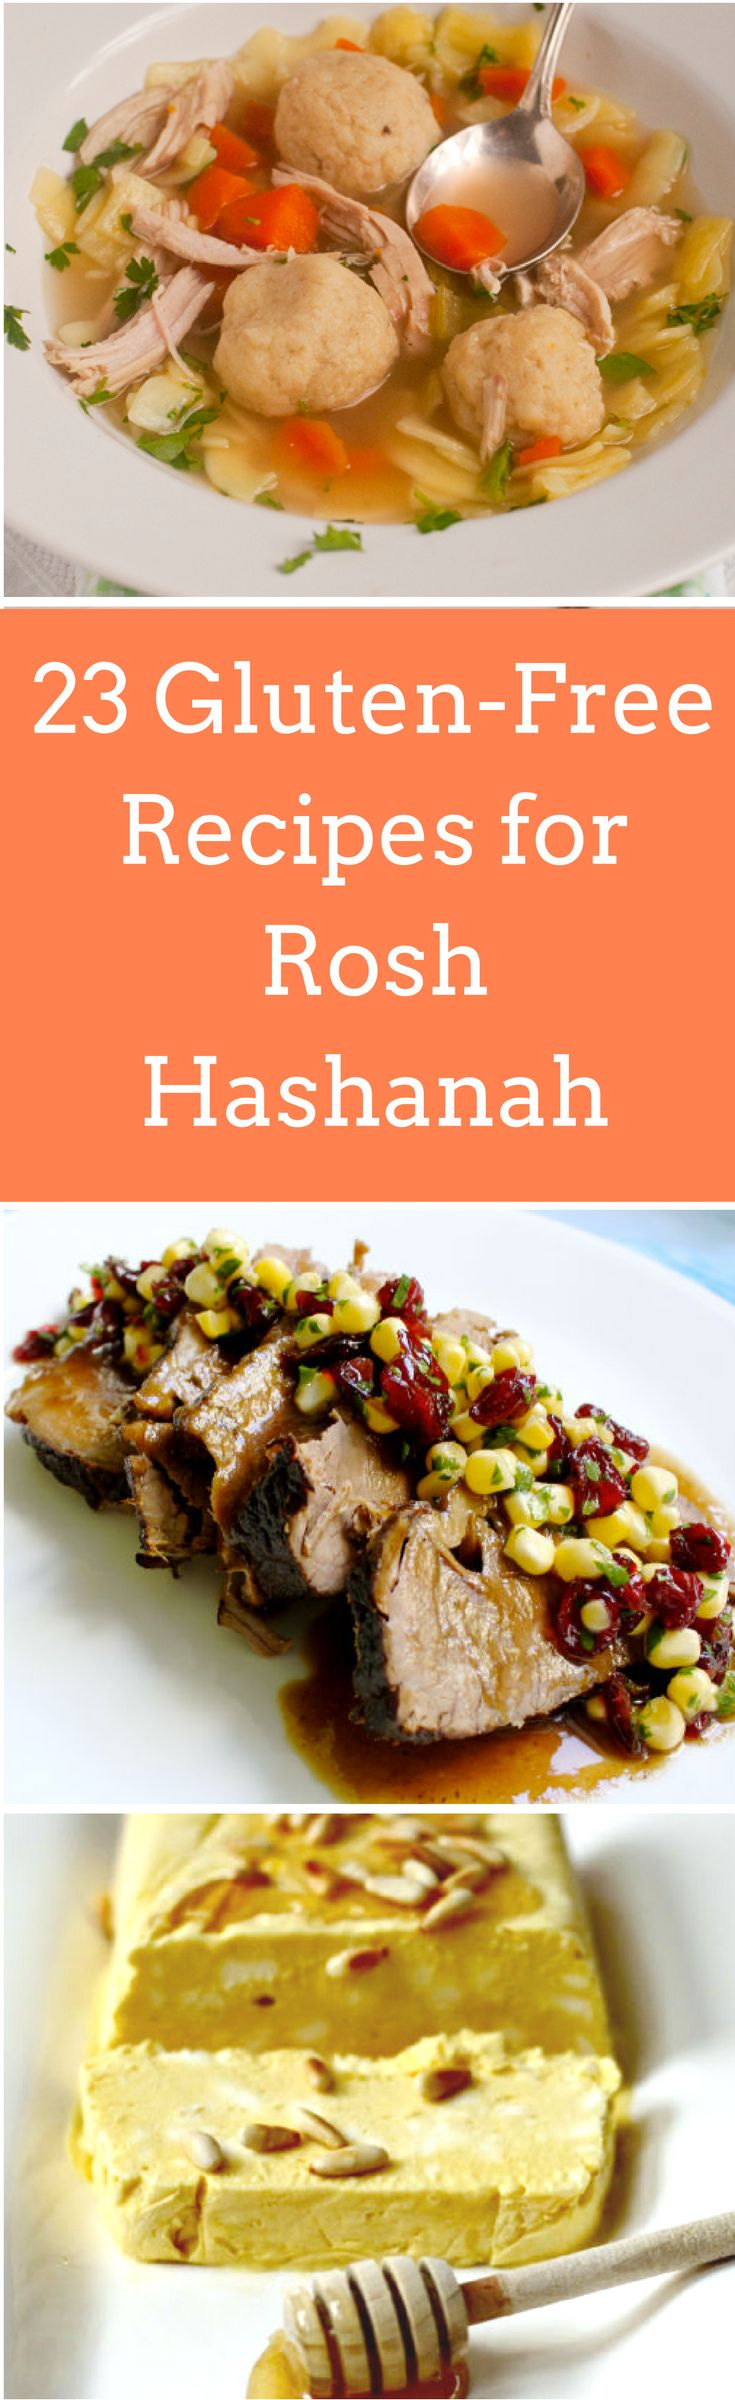 Going gluten-free or serving someone who is? Here are 23 ways you can enjoy traditional holiday foods. http://www.myjewishlearning.com/the-nosher/23-gluten-free-recipes-for-rosh-hashanah/